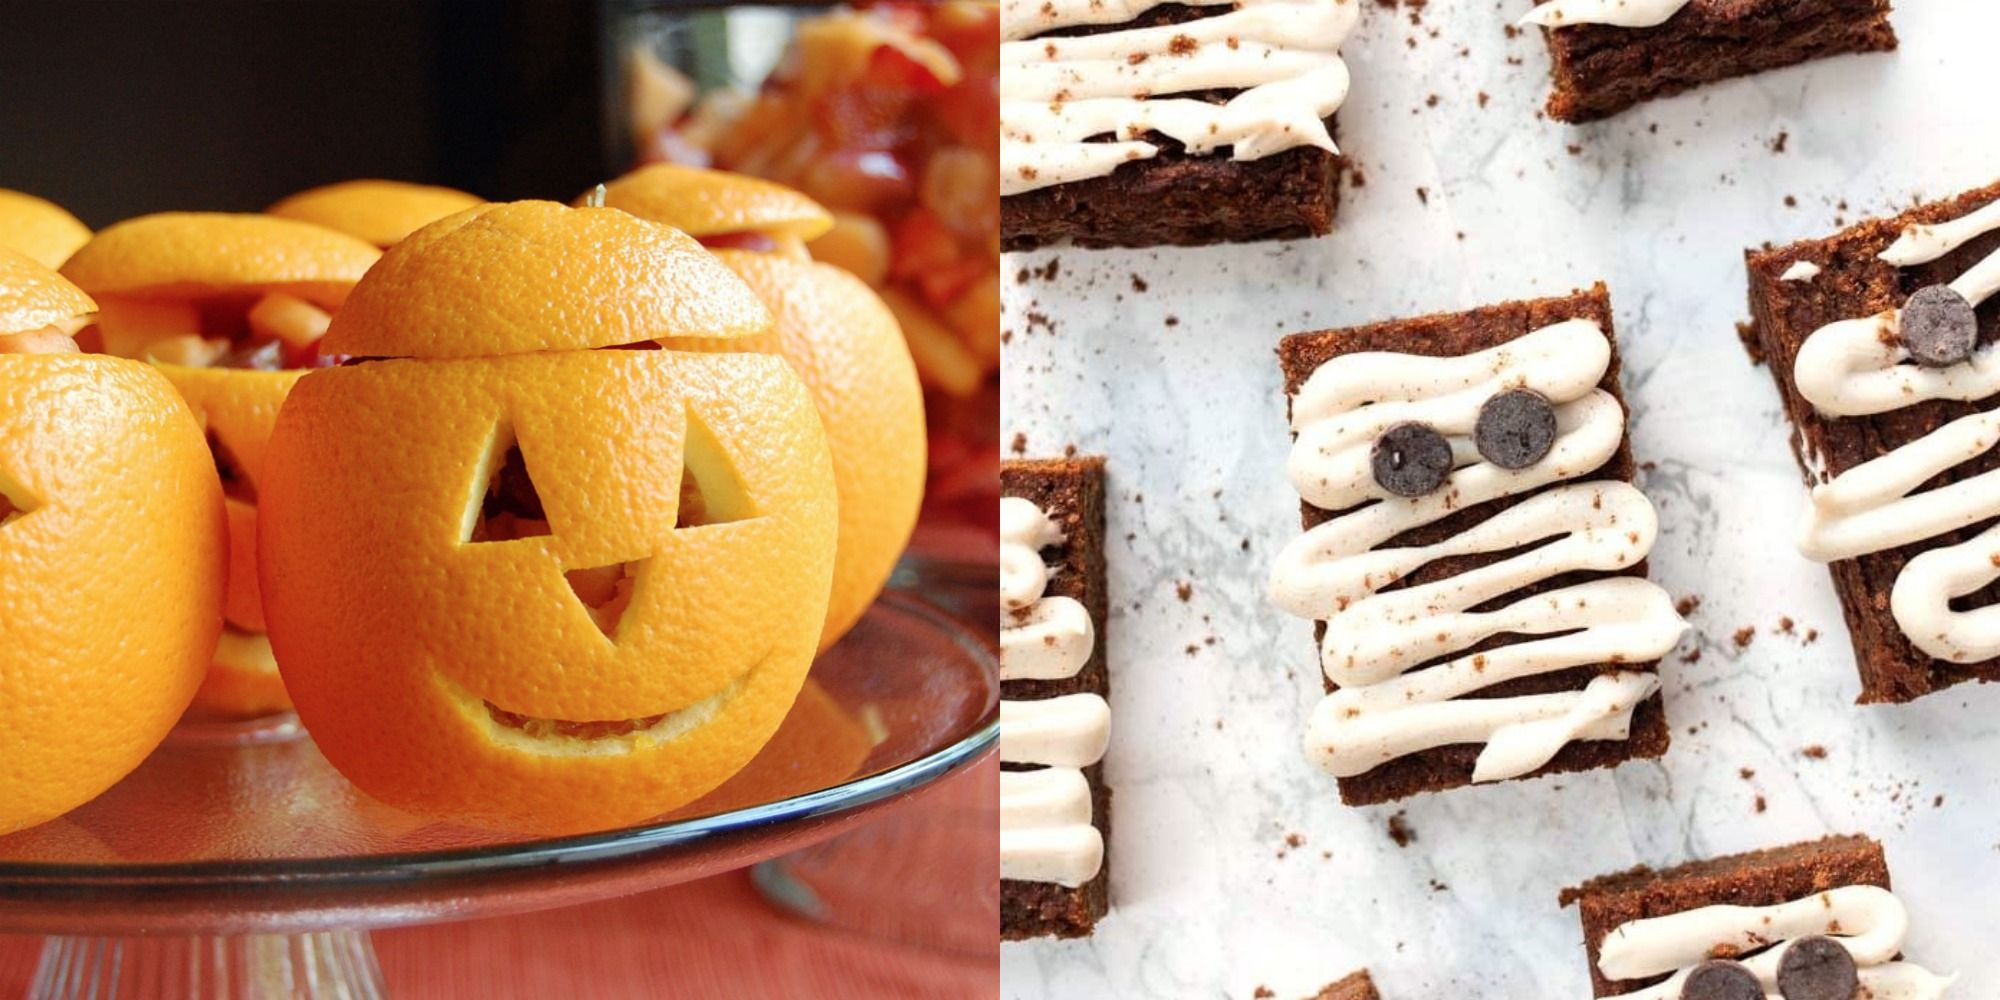 Watch diy halloween from diy power pumpkin carving 03:33 power pumpkin carving 03:33 amy matthews demonstrates the process of pumpkin carving with power tools. 30 Healthy Halloween Treats Snacks And Recipe Ideas 2021